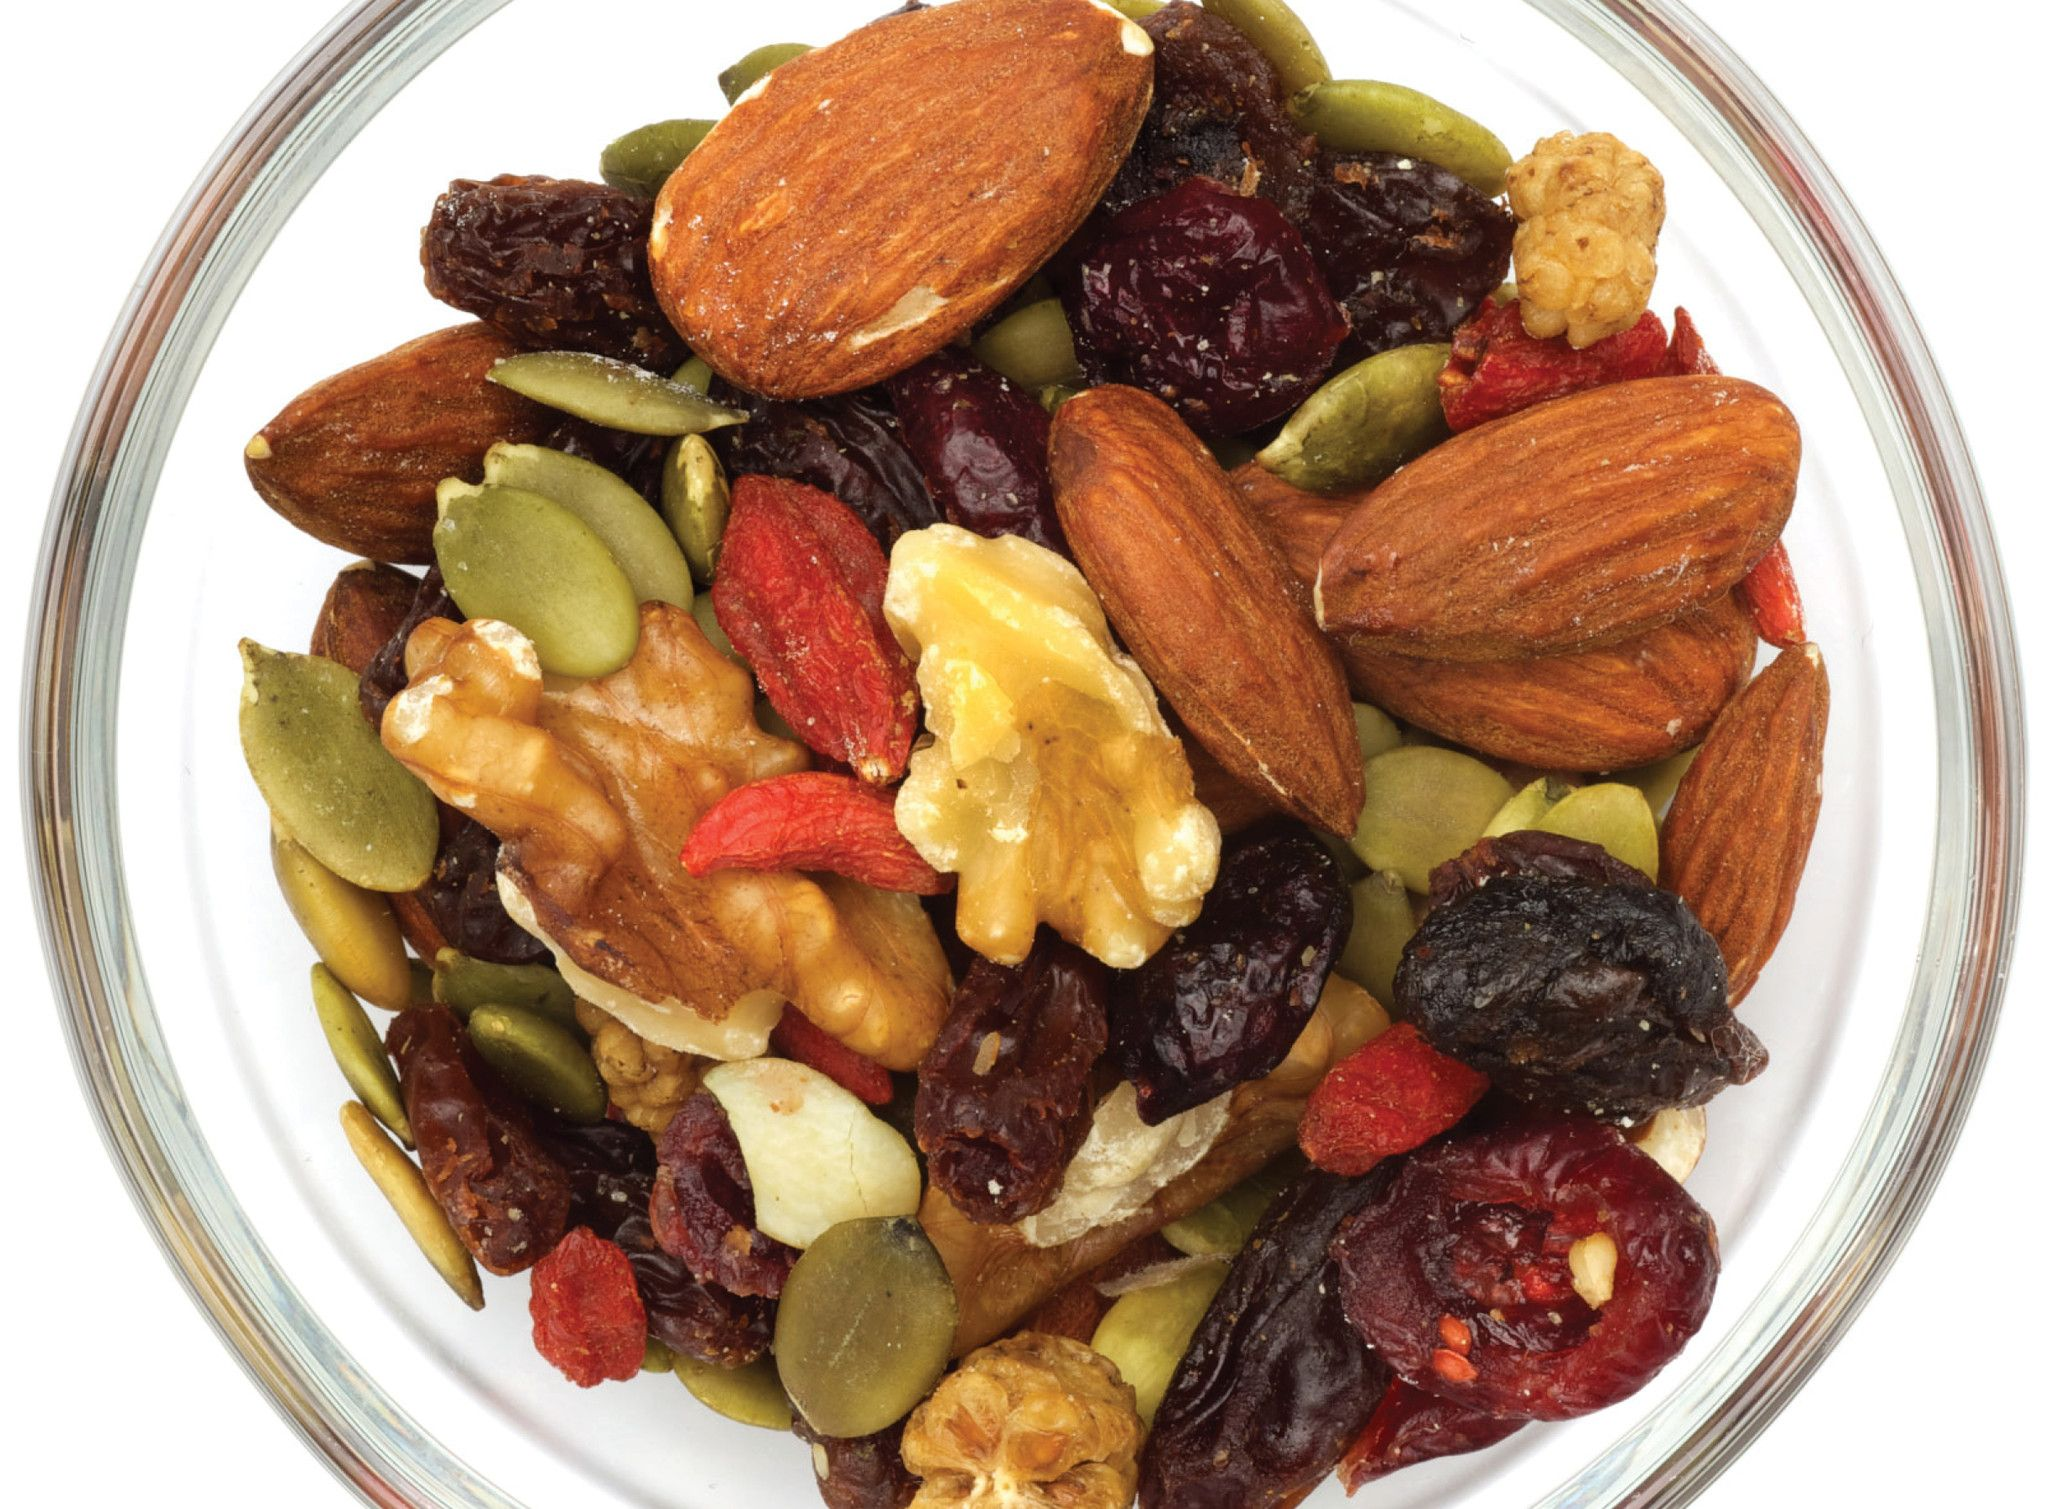 Happy trails dried fruits and nuts worth hiking for